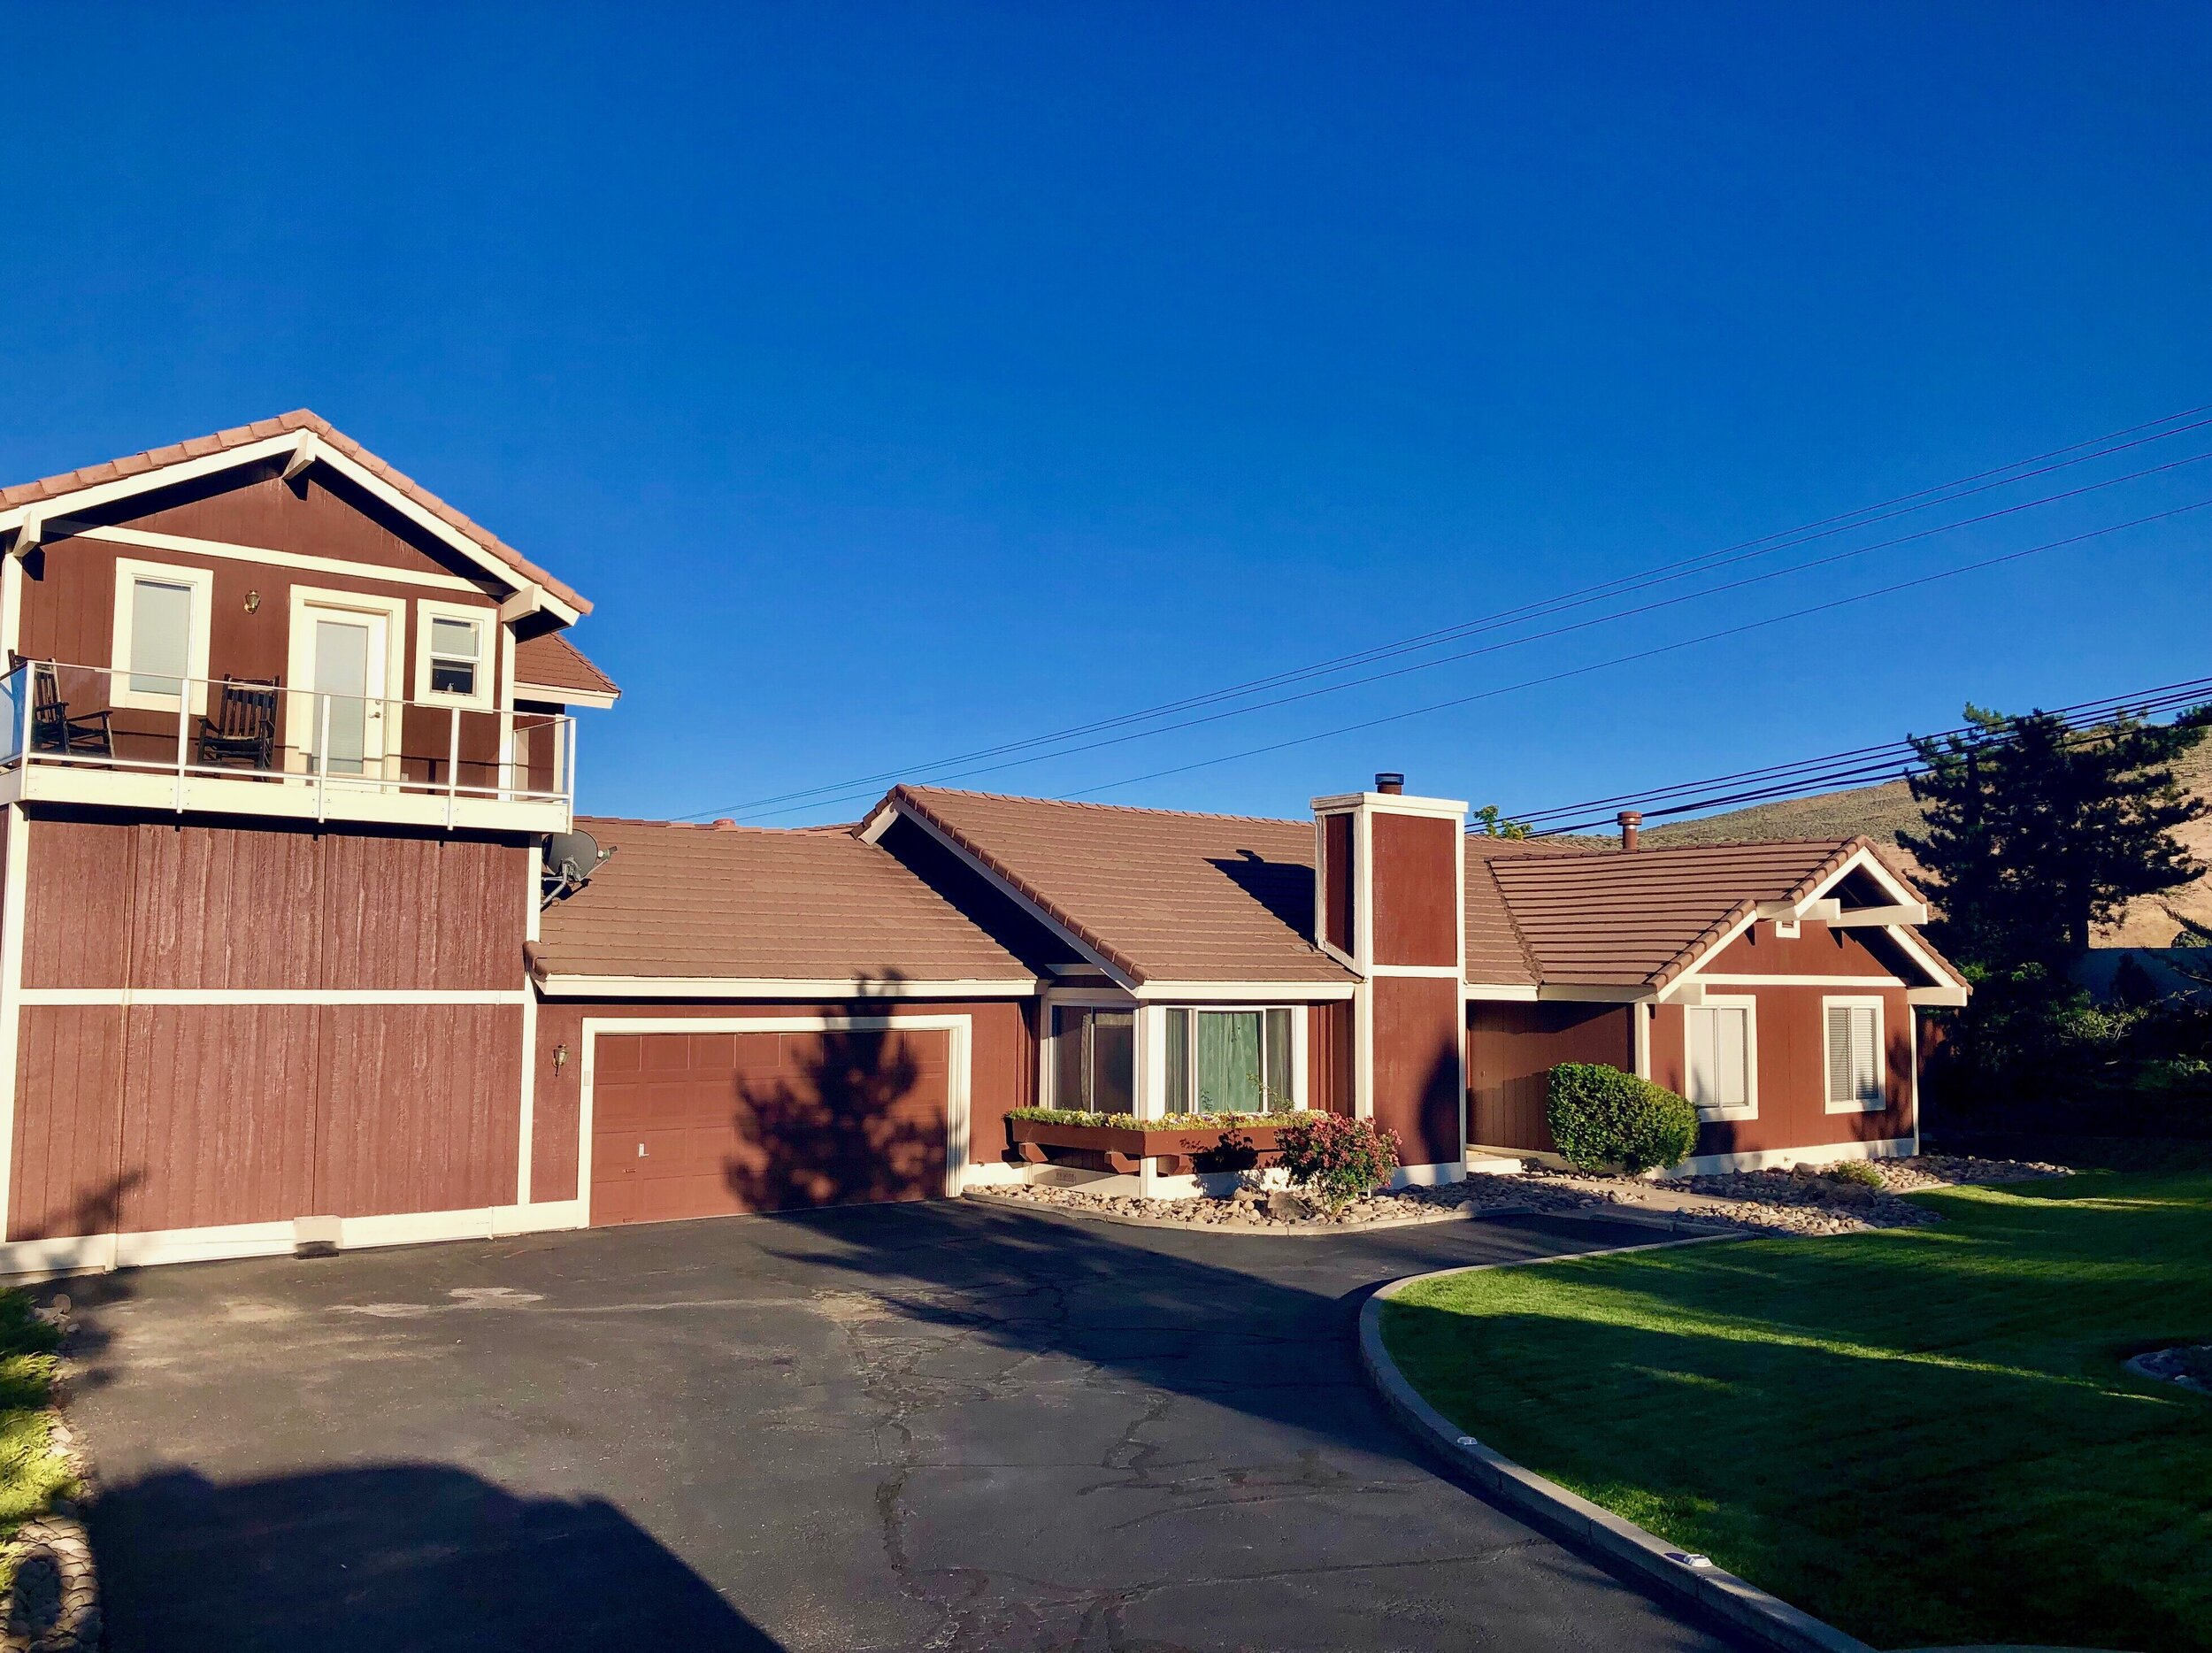 14600 Sundance Drive, Sparks, NV  3 Bed | 3 Bath | 2,834 sqft | $799,000 Kassi Dellabalma | 775.233.5071